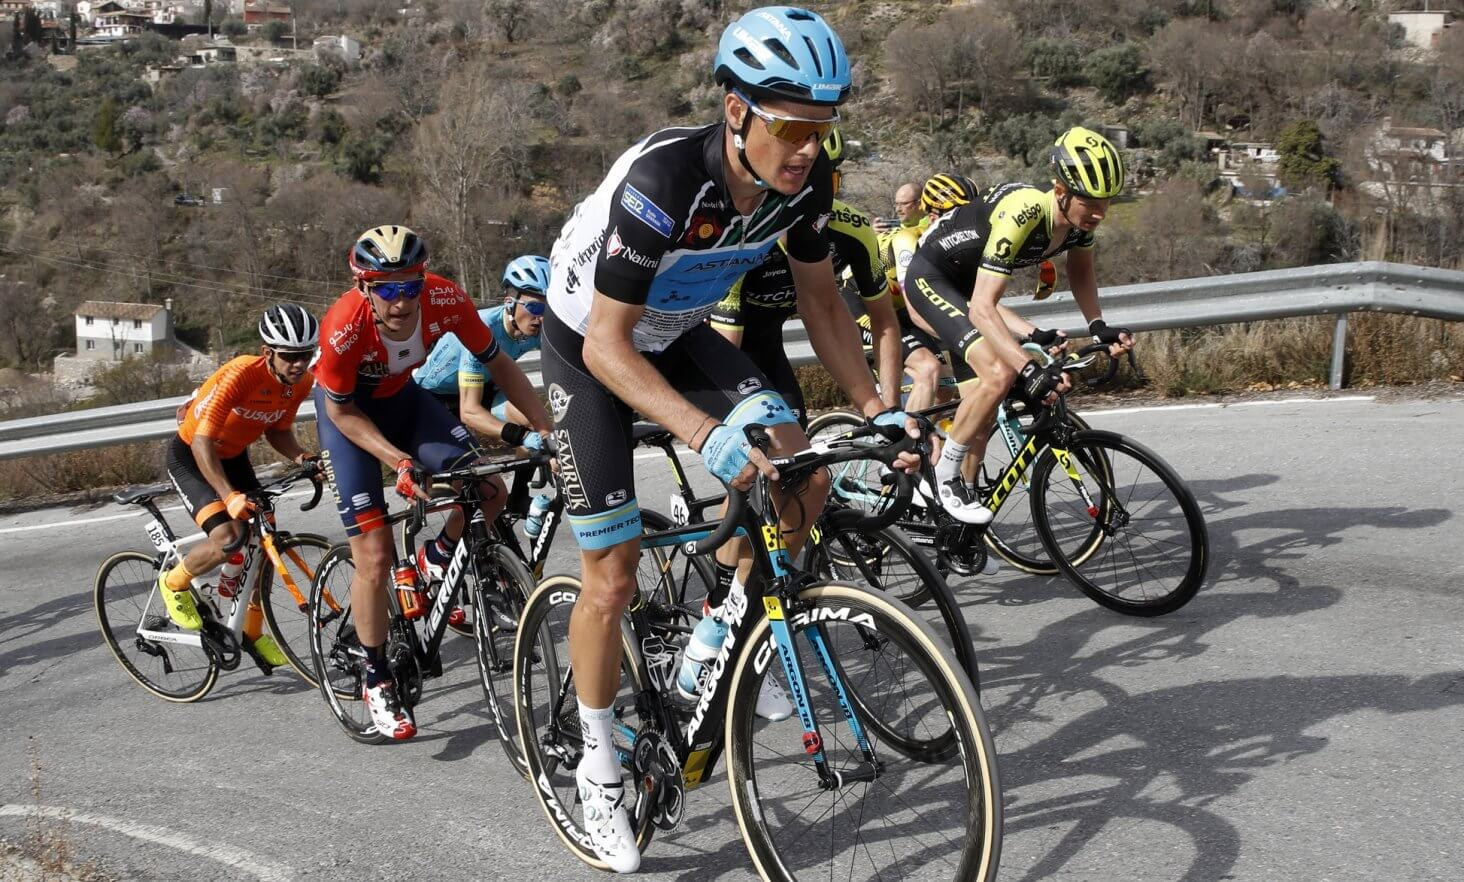 NORTHWAVE ONE-TWO IN ANDALUCIA: JAKOB FUGLSANG CLAIMS OVERALL WIN